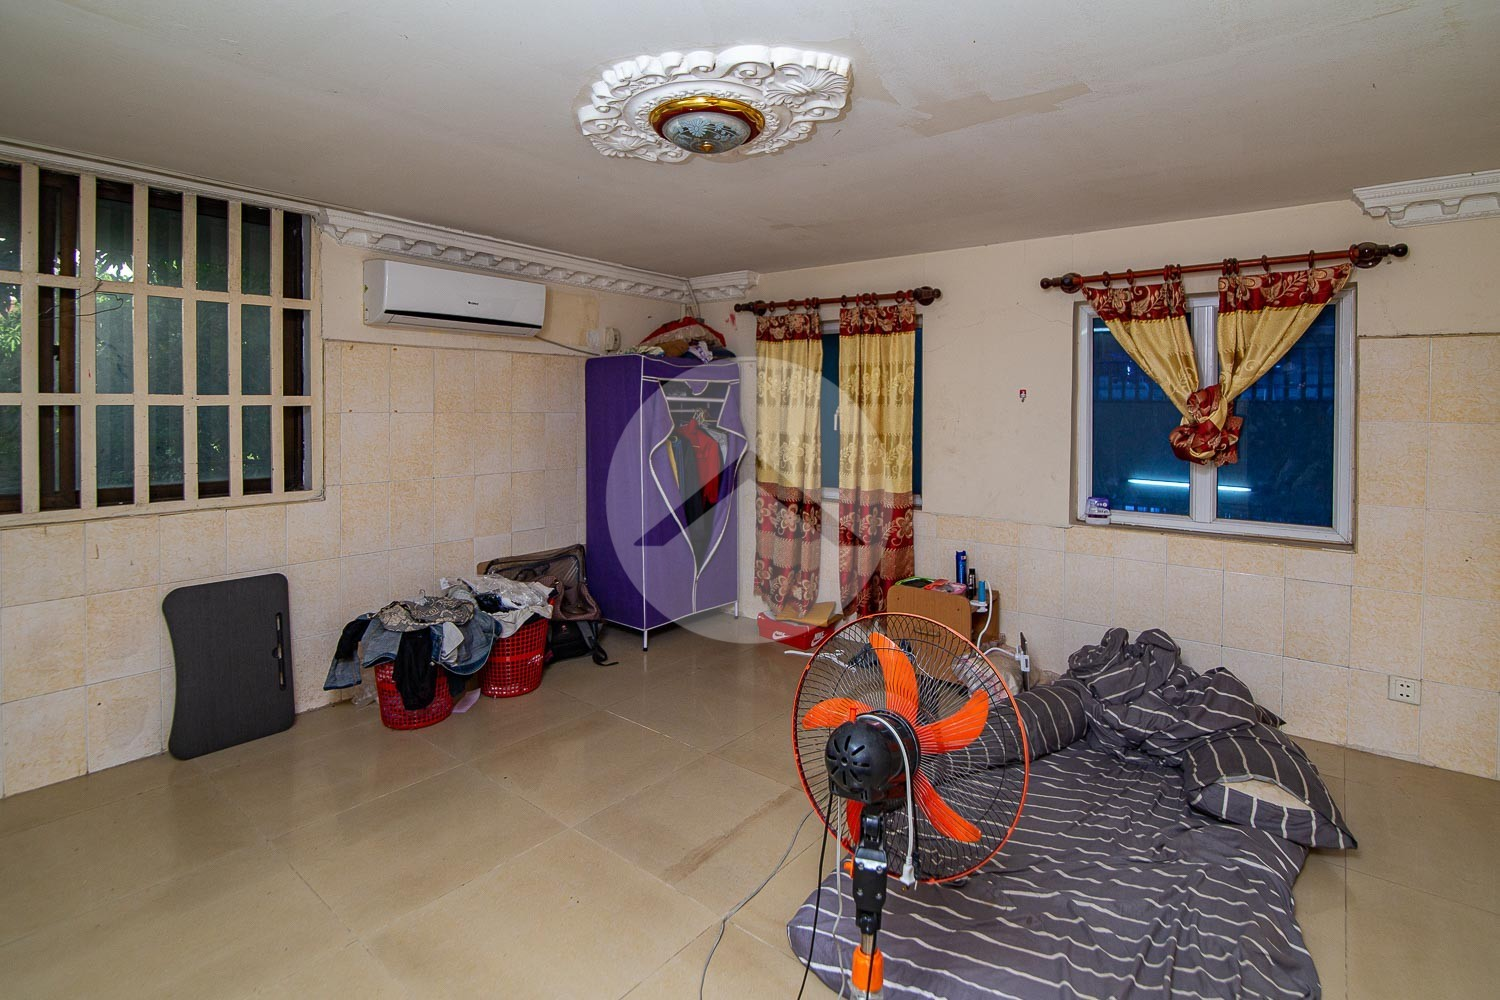 6 Bedroom Flat For Sale  - Khan Meanchey, Phnom Penh